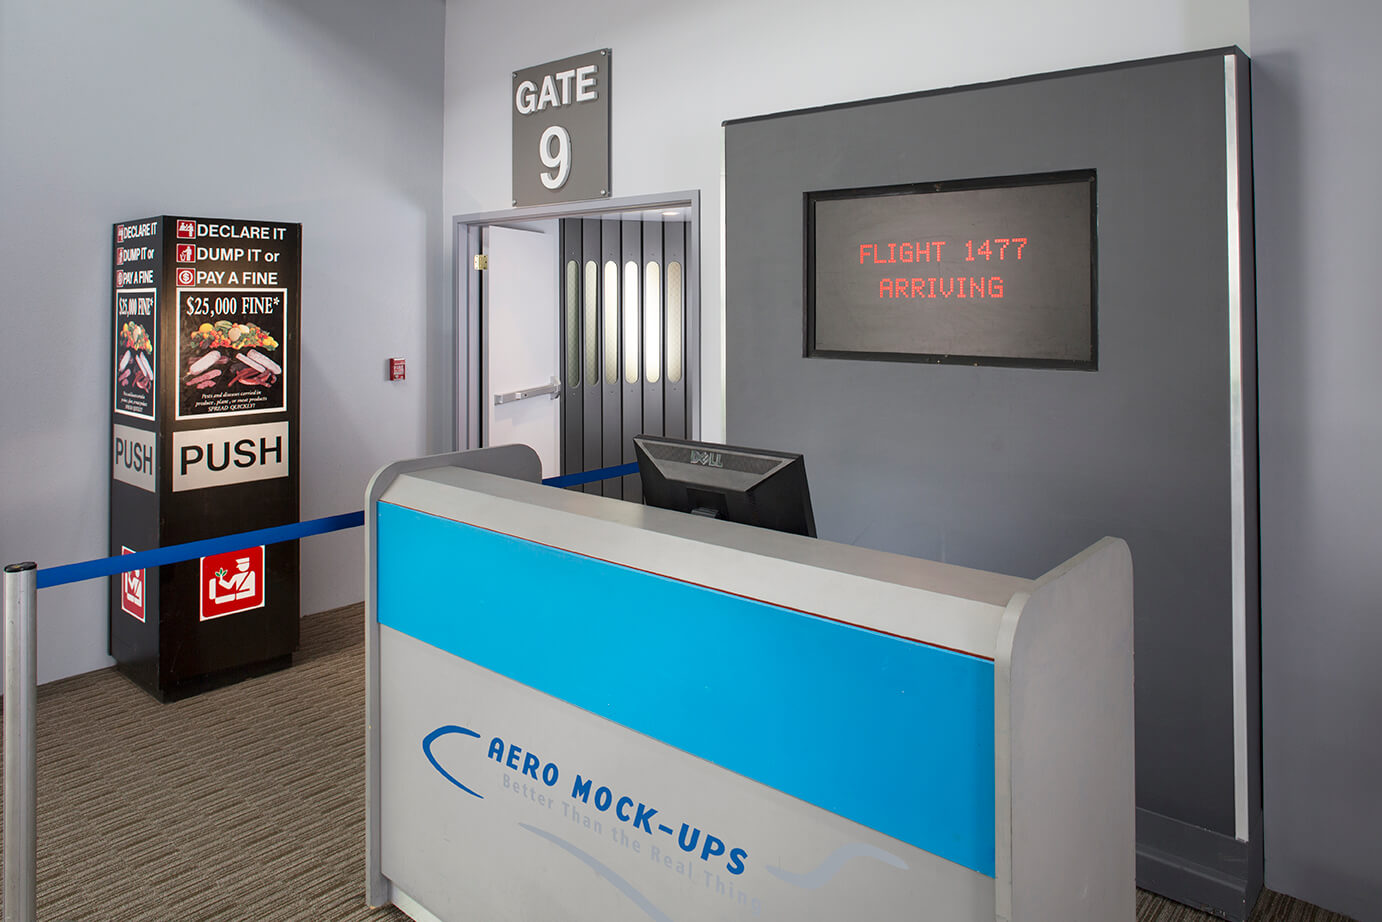 15-1 Skyway - Gate and Jetway - 10